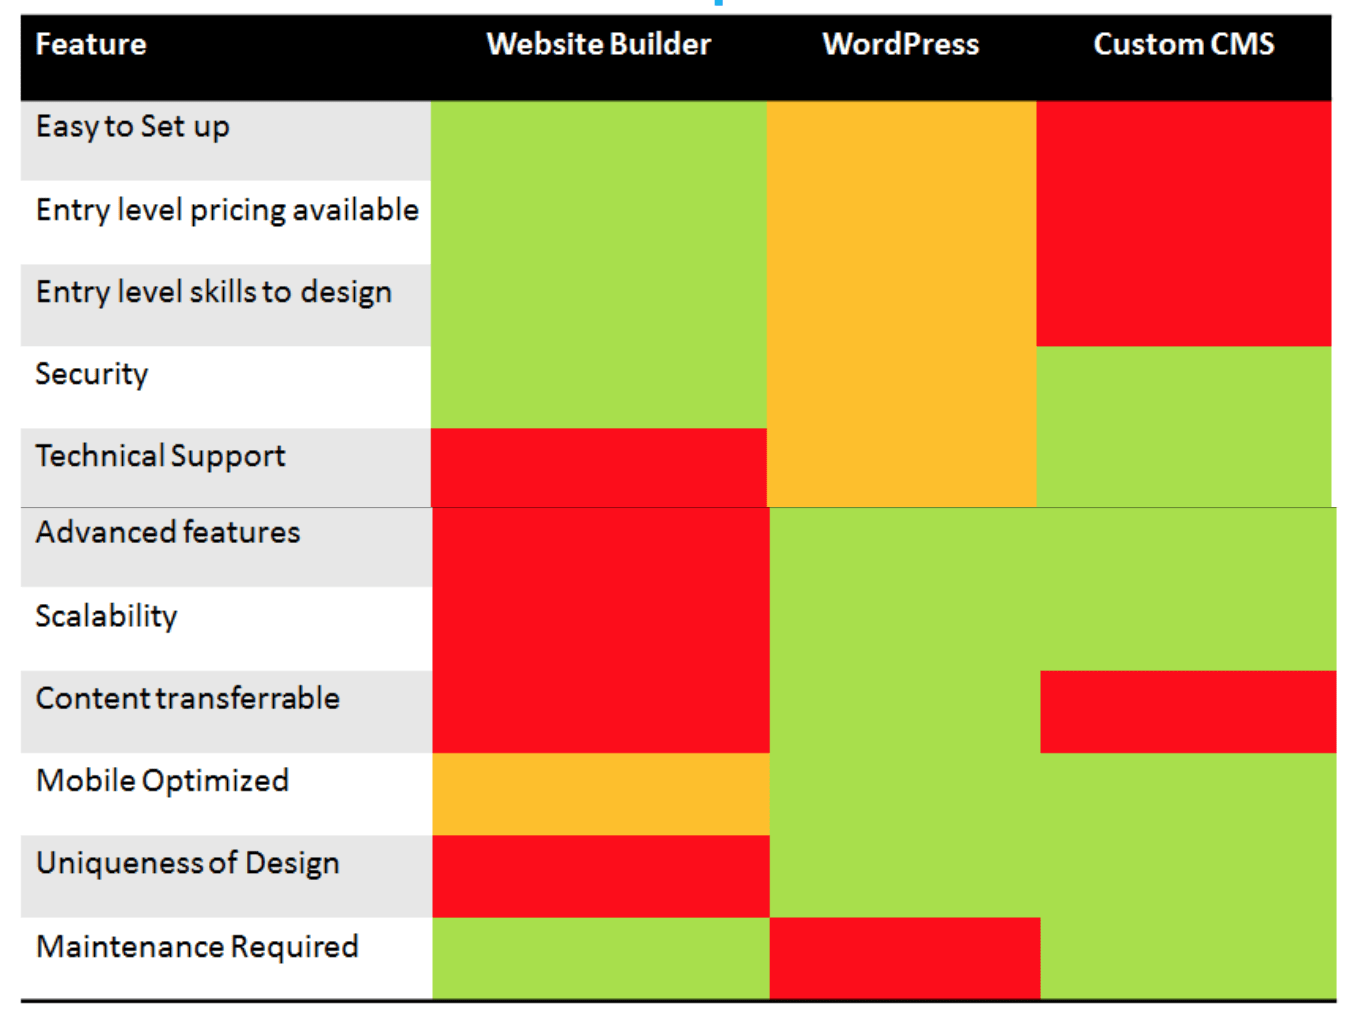 Website Platform Options Matrix